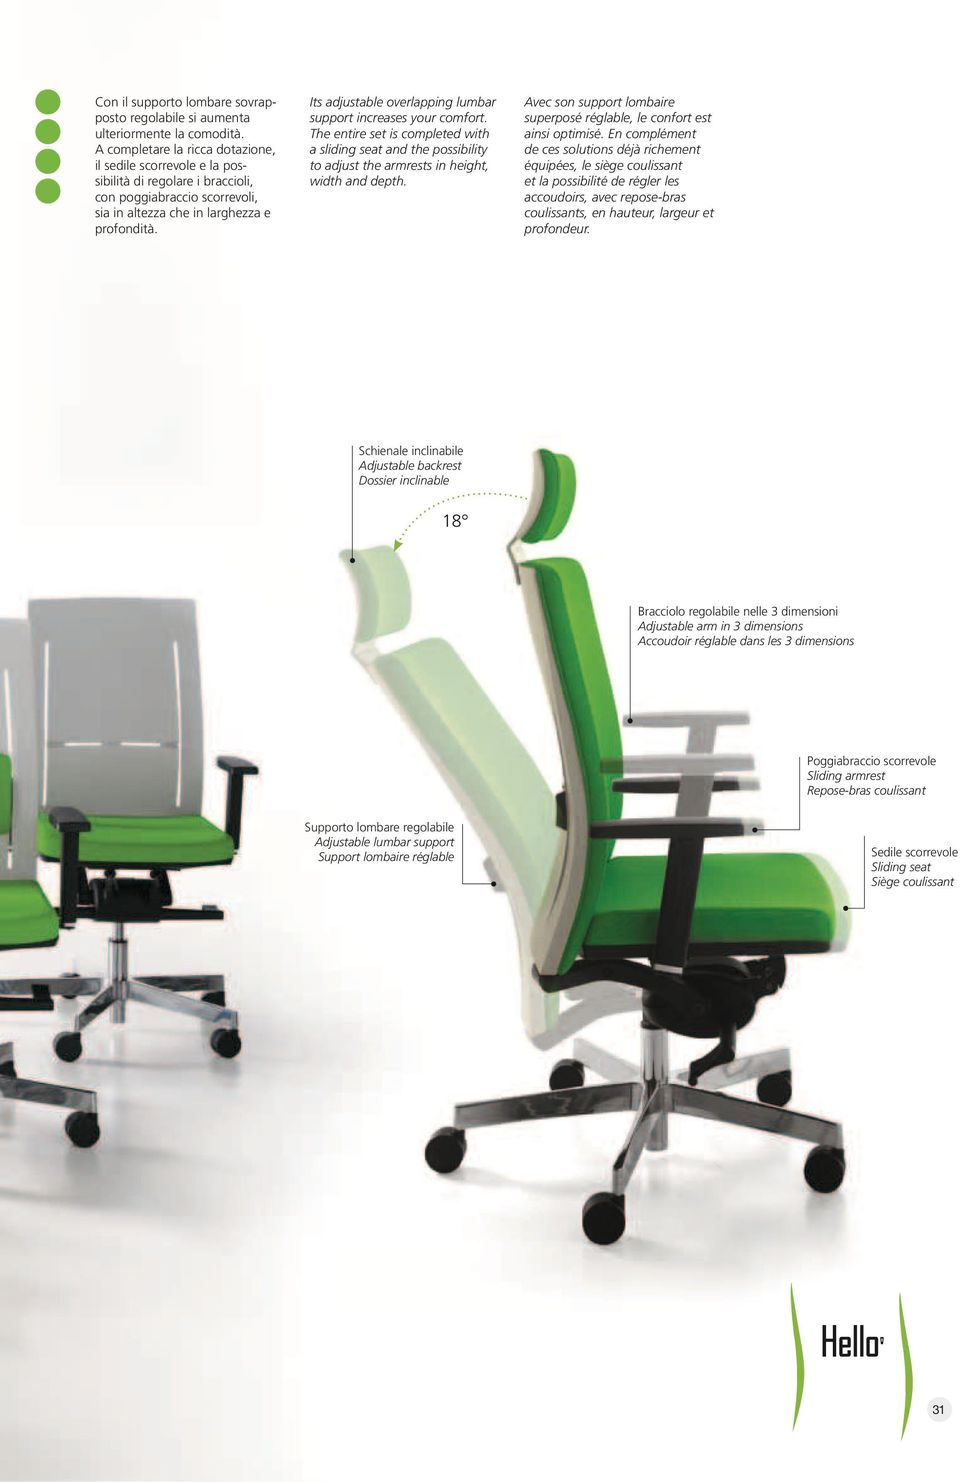 Its adjustable overlapping lumbar support increases your comfort. The entire set is completed with a sliding seat and the possibility to adjust the armrests in height, width and depth.